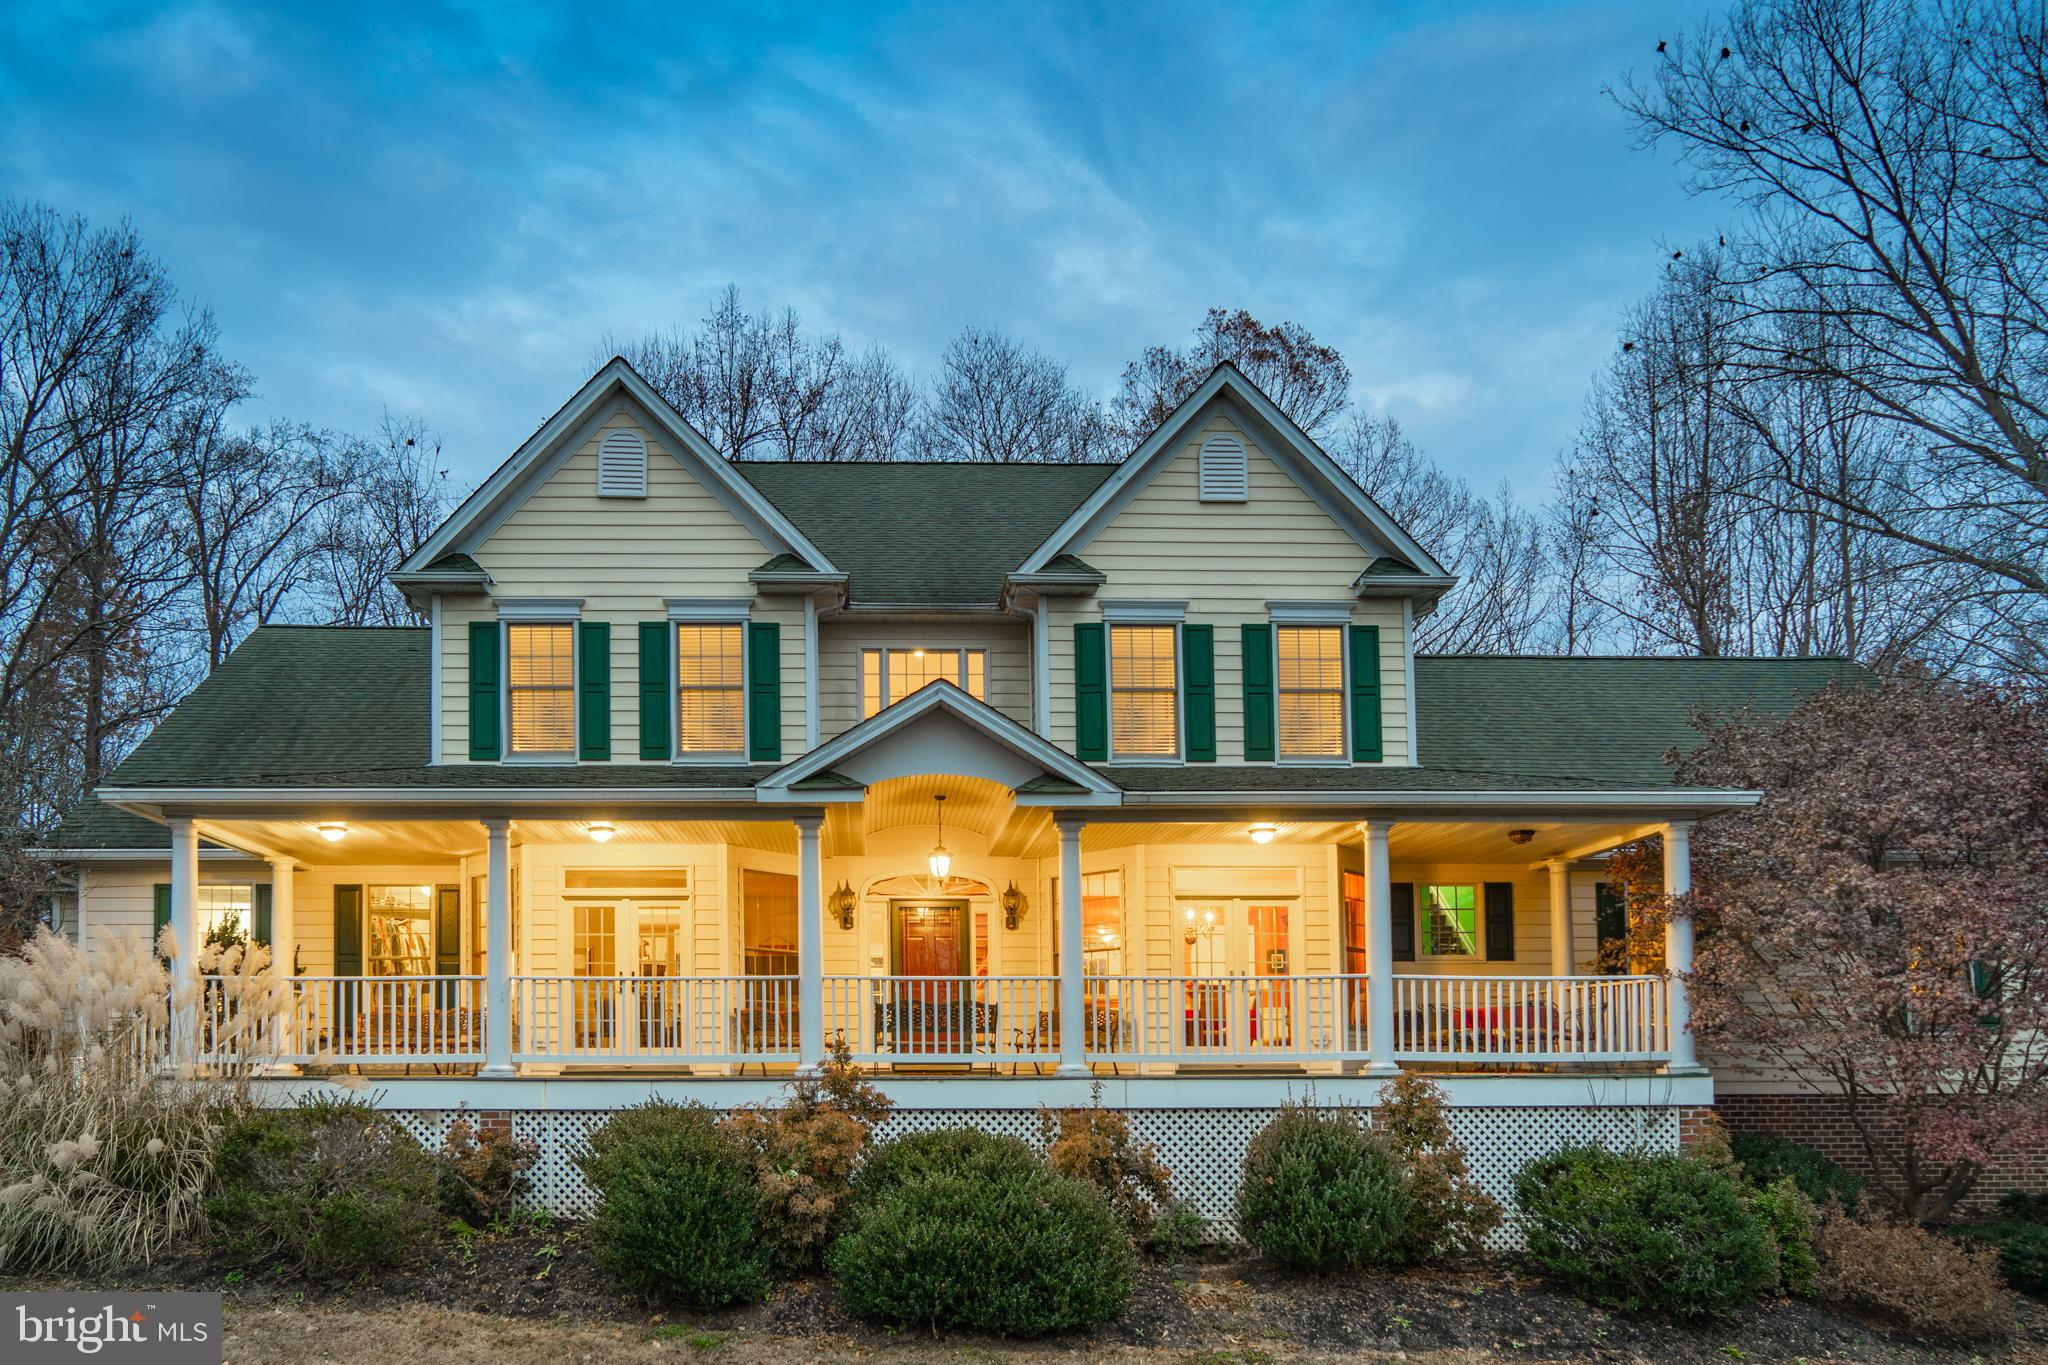 1616 Monkton Rd, Monkton, MD, 21111